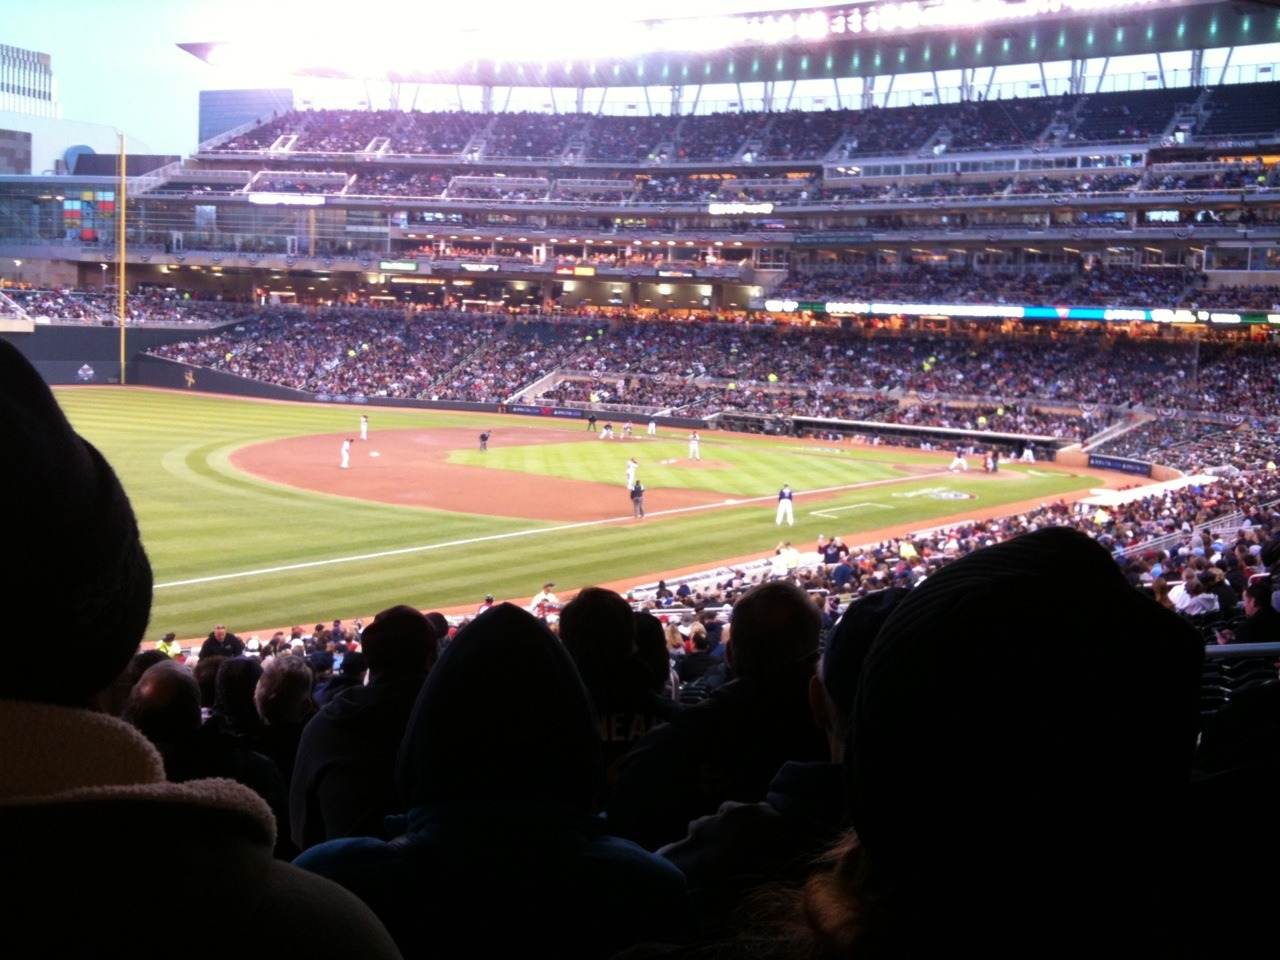 First Twins game of the 2012 season!